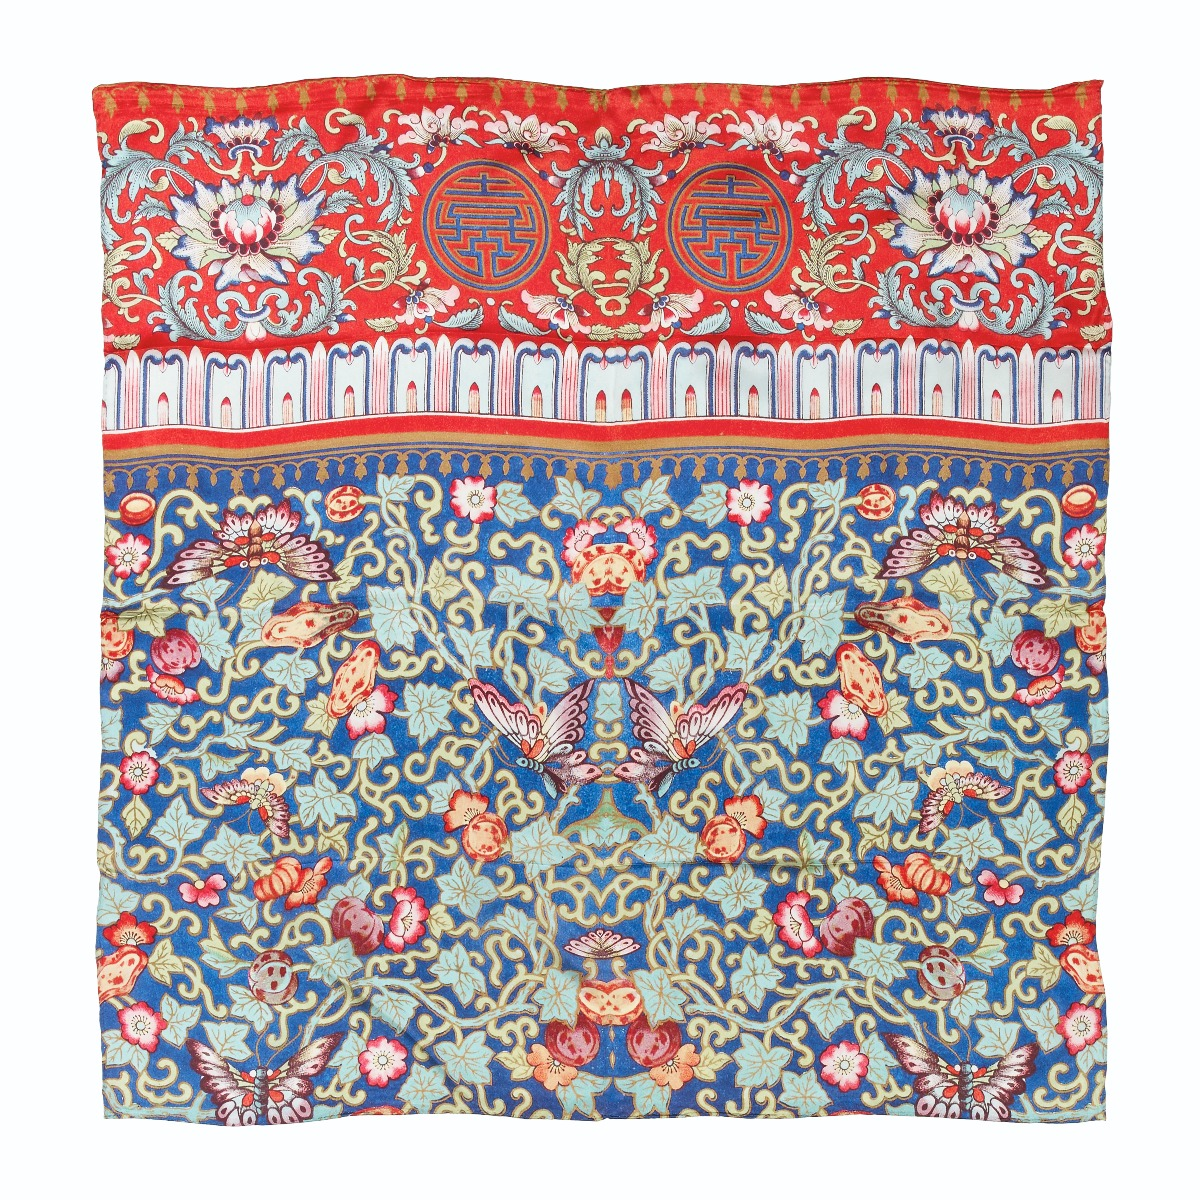 Chinoiserie silk scarf (red)